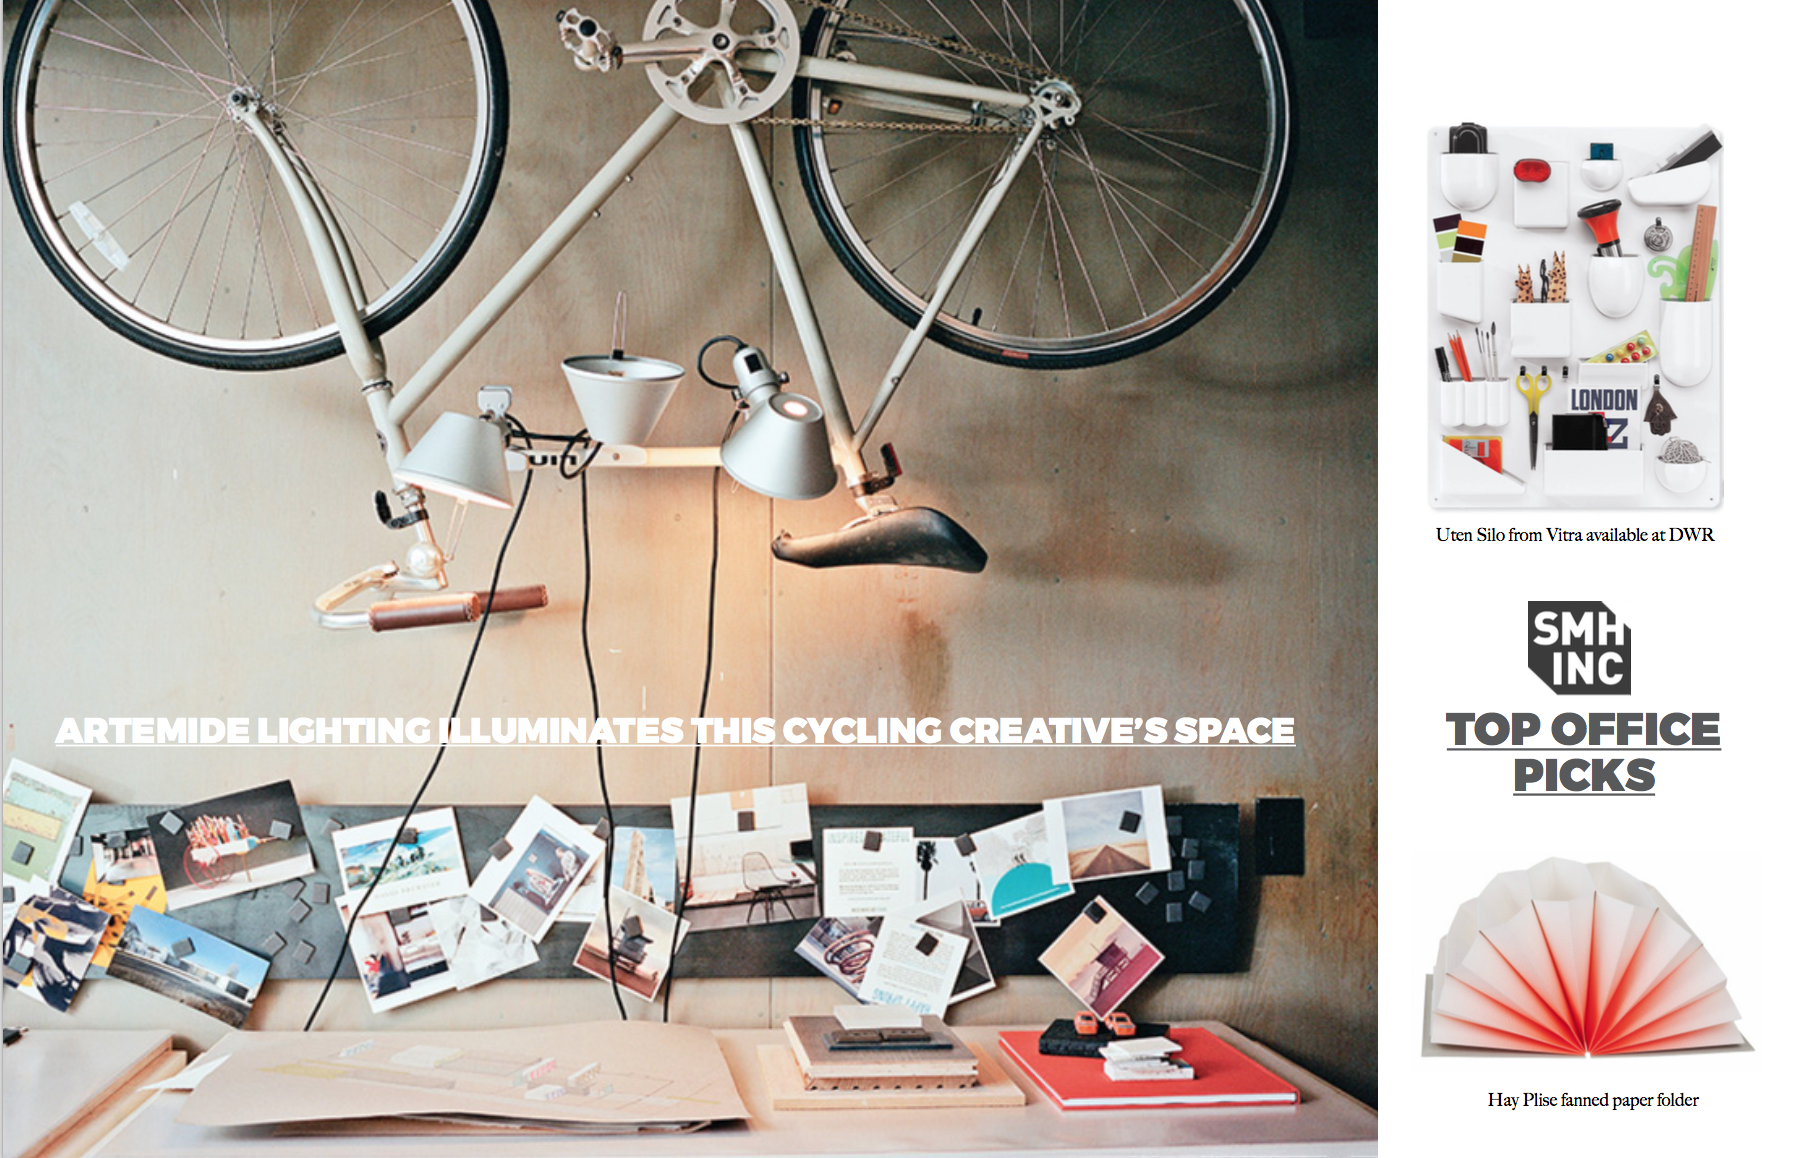 Left: Architect Brue Norelius transformed one of the bedrooms into a studio. A custom desk has a magnetic board and bike as wall art above.Right: SMH, Inc's top picks for office accessories. Images courtesy of  DWR  and  Hay .The main image appears on  www.dwell.com